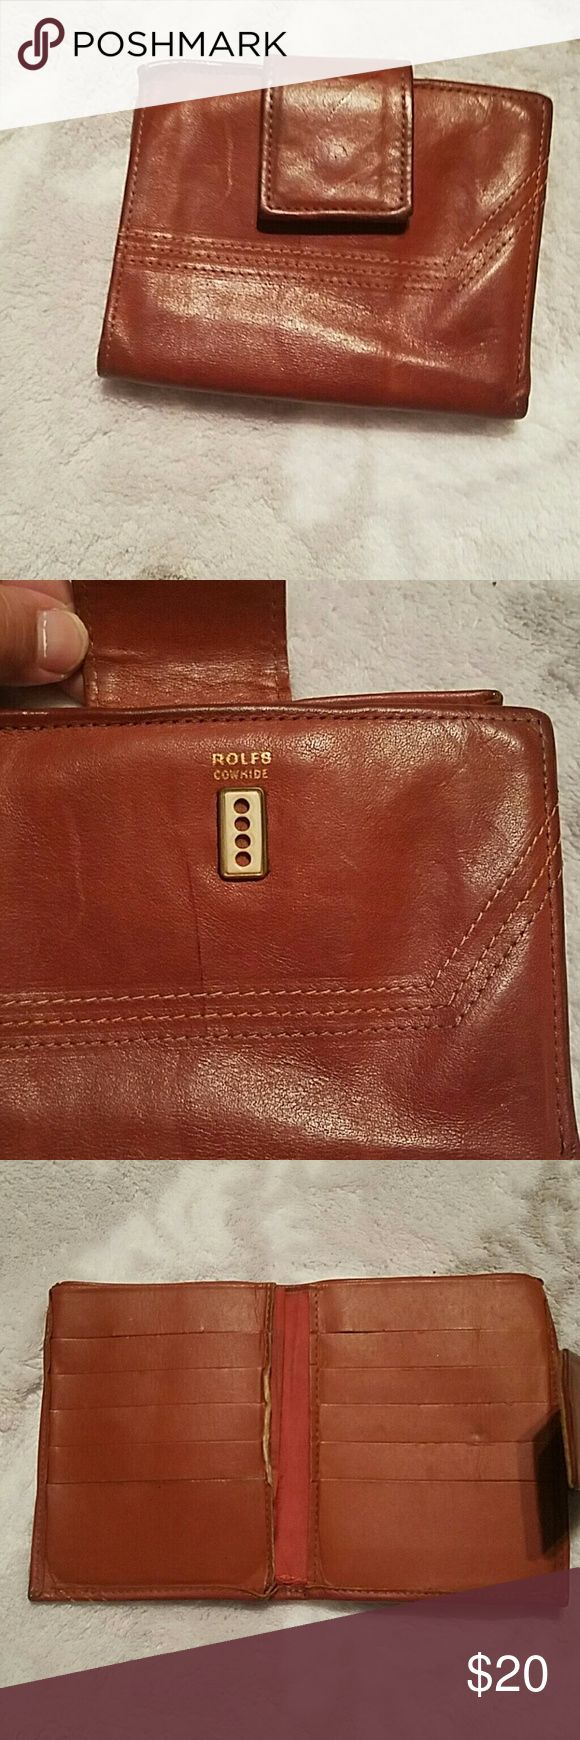 Rolfs Wallet Rolfs Cowhide Vintage wallet, beautiful cognac color. Has wear to it as shown, but still has alot of life to it. Rolfs  Accessories